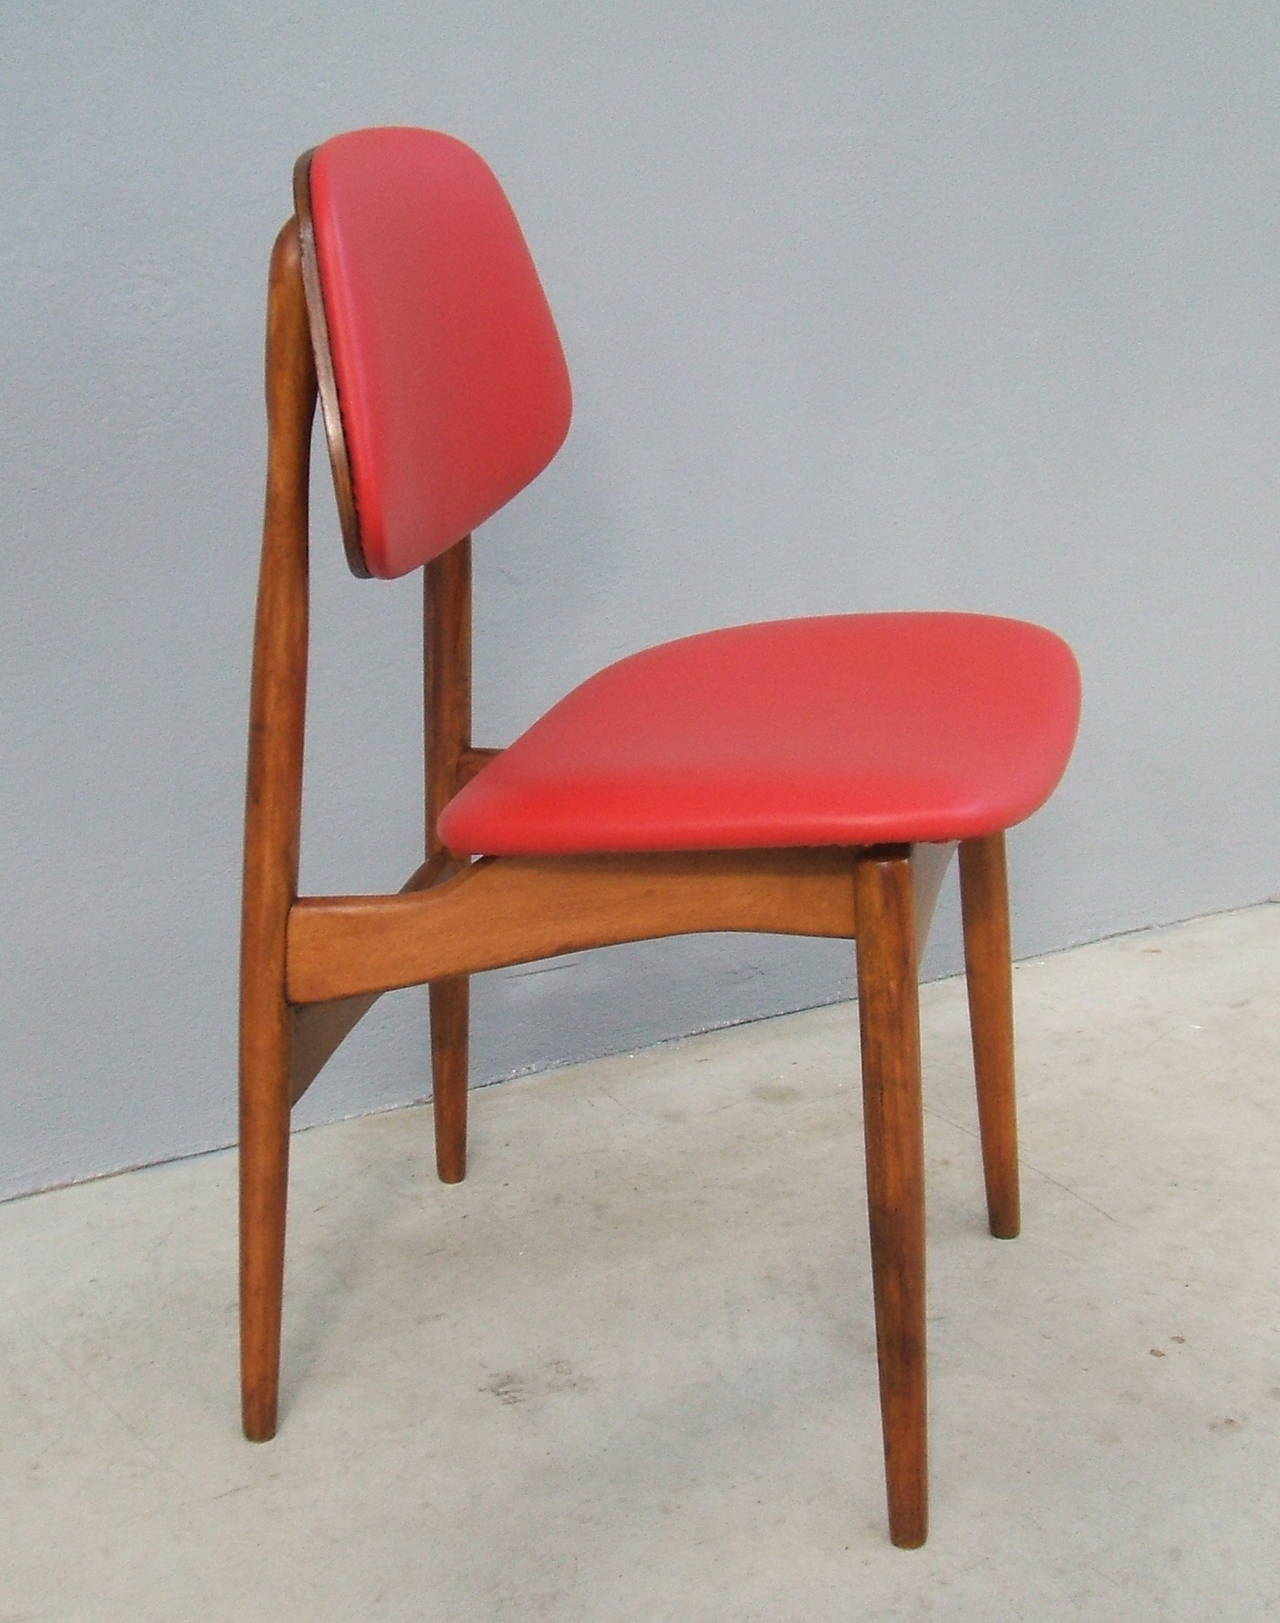 Fine Set of Six Italian 1950s Chairs In Excellent Condition For Sale In Carpaneto Piacentino, Italy